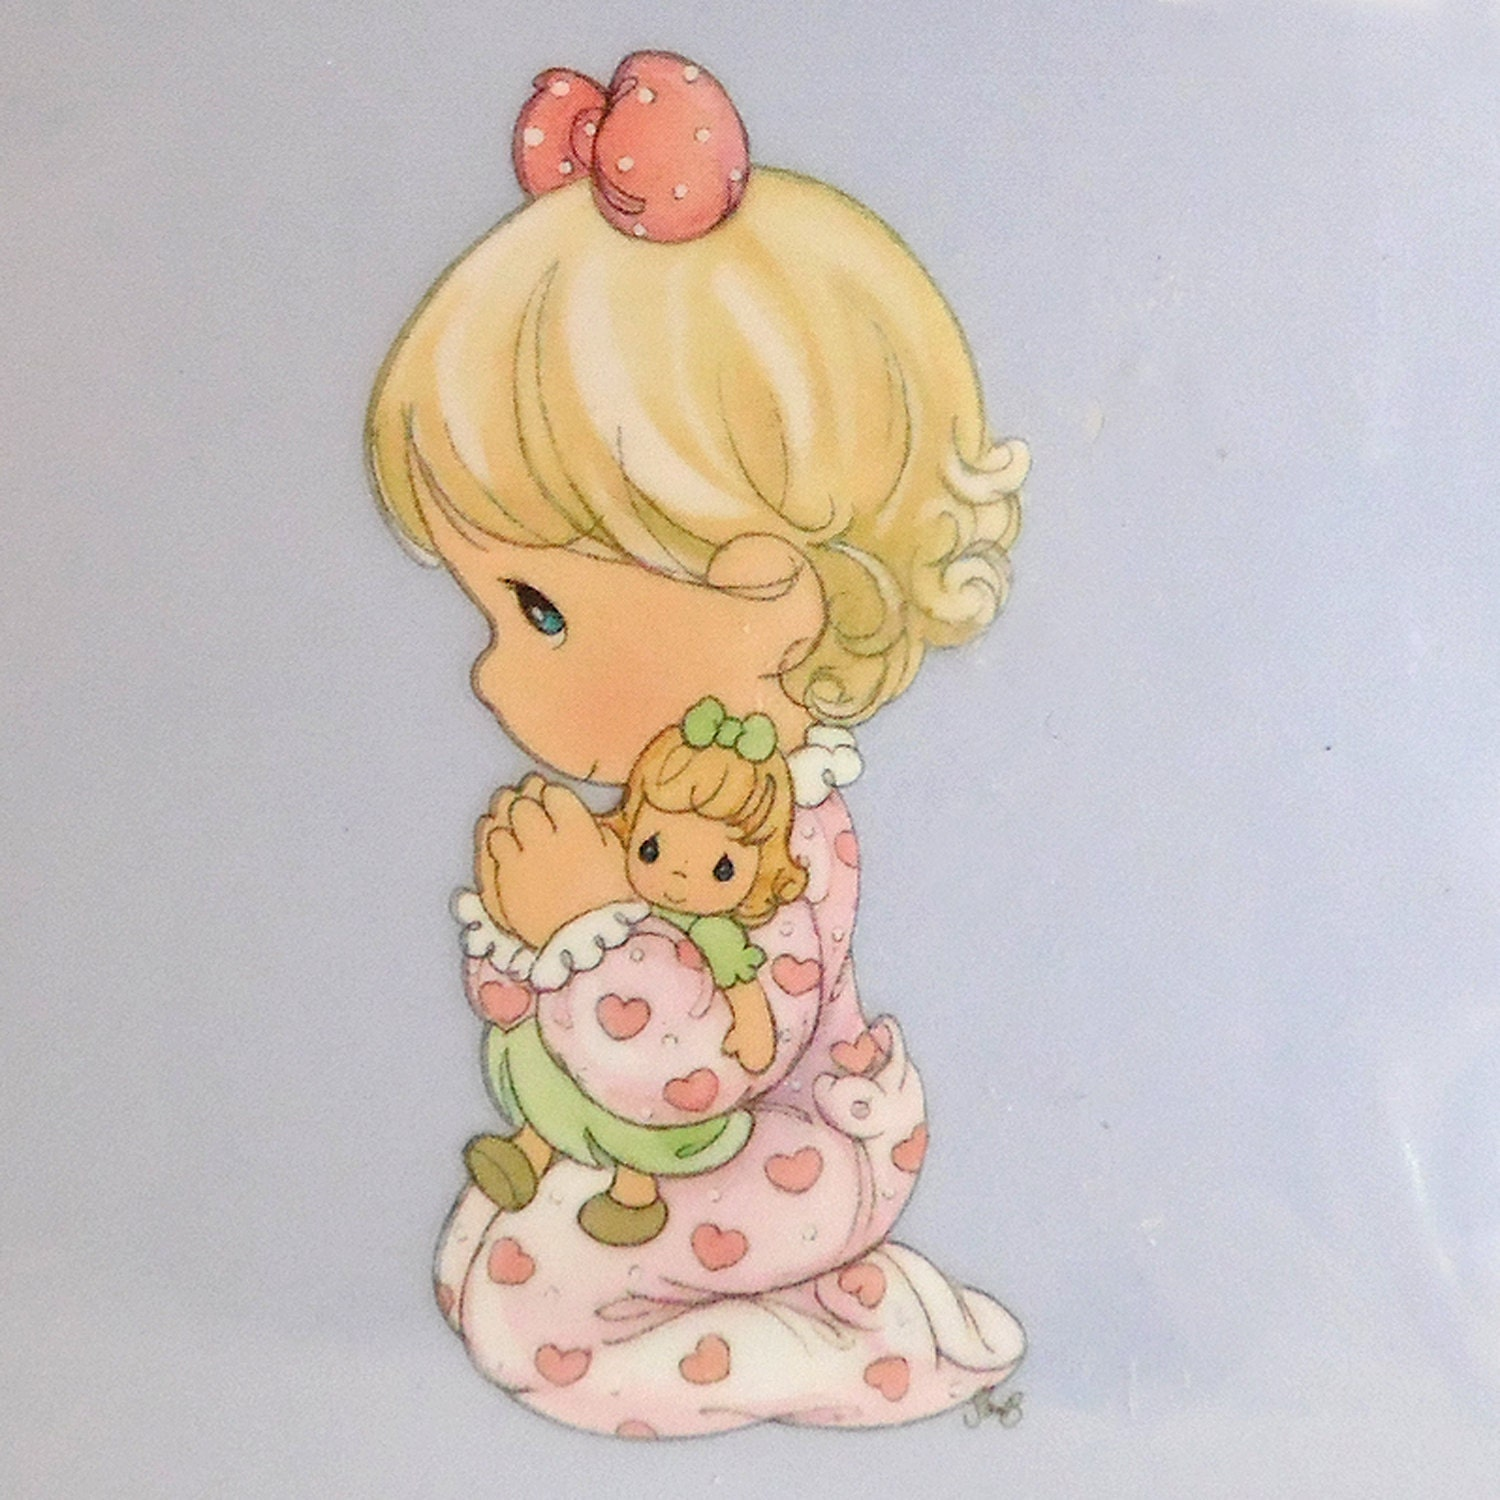 ThPrecious Moments Dolls Phone Orders Welcome. Reach us at () or iidashonolulu@baylionopur.ml Made in the Philippines. Sold only in Hawaii. We do Shipping.